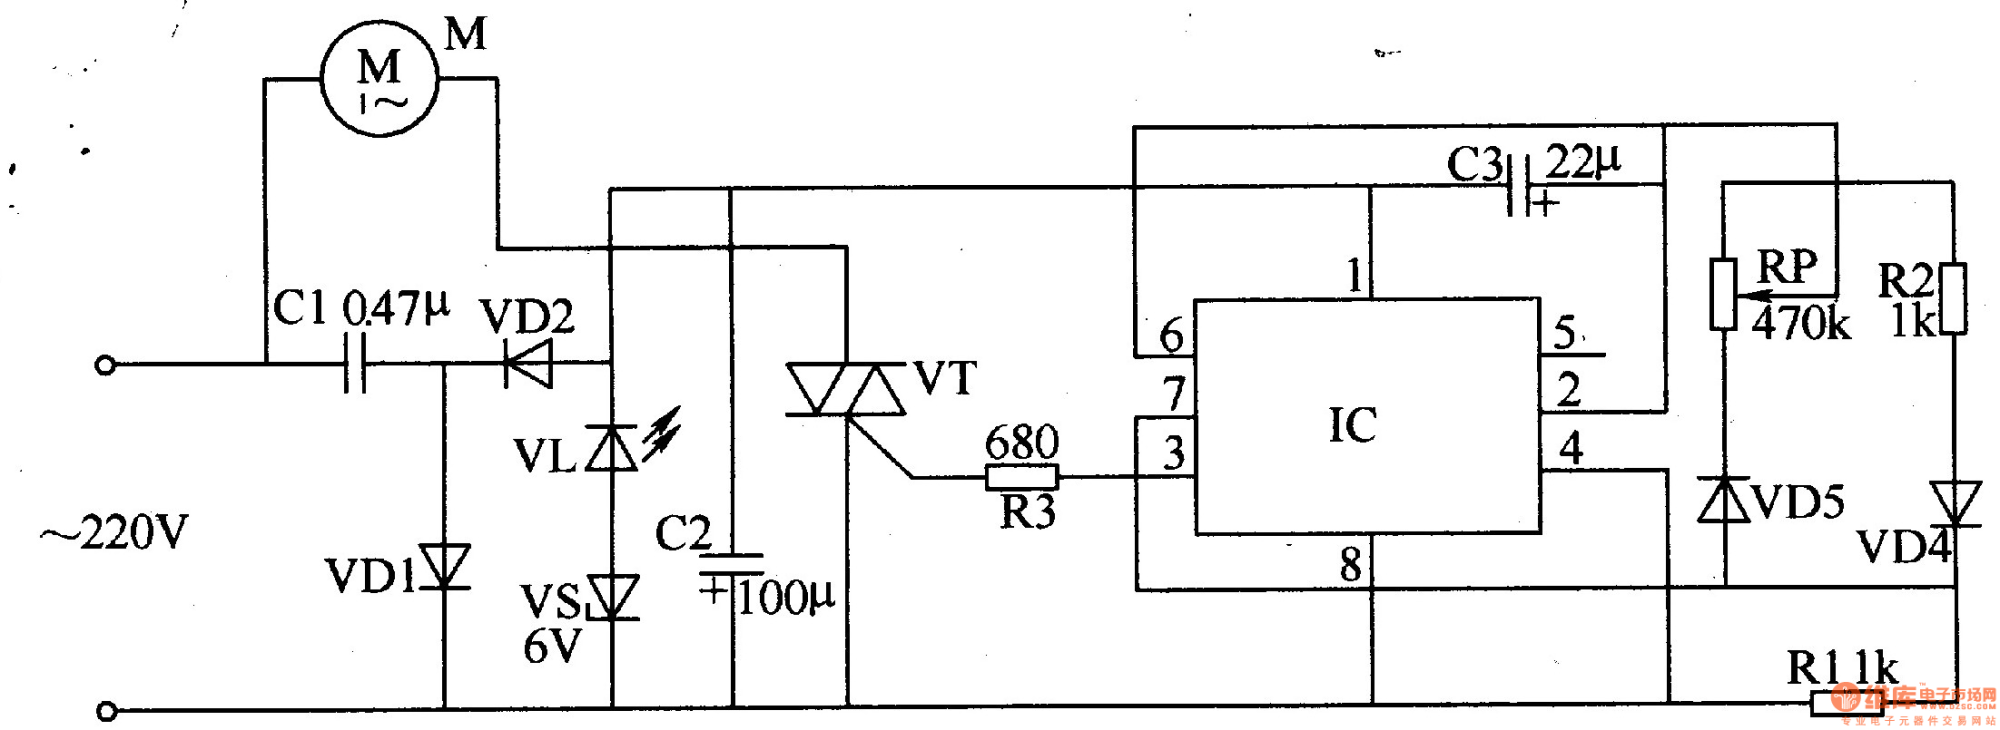 hight resolution of fan speed controller diagram 1